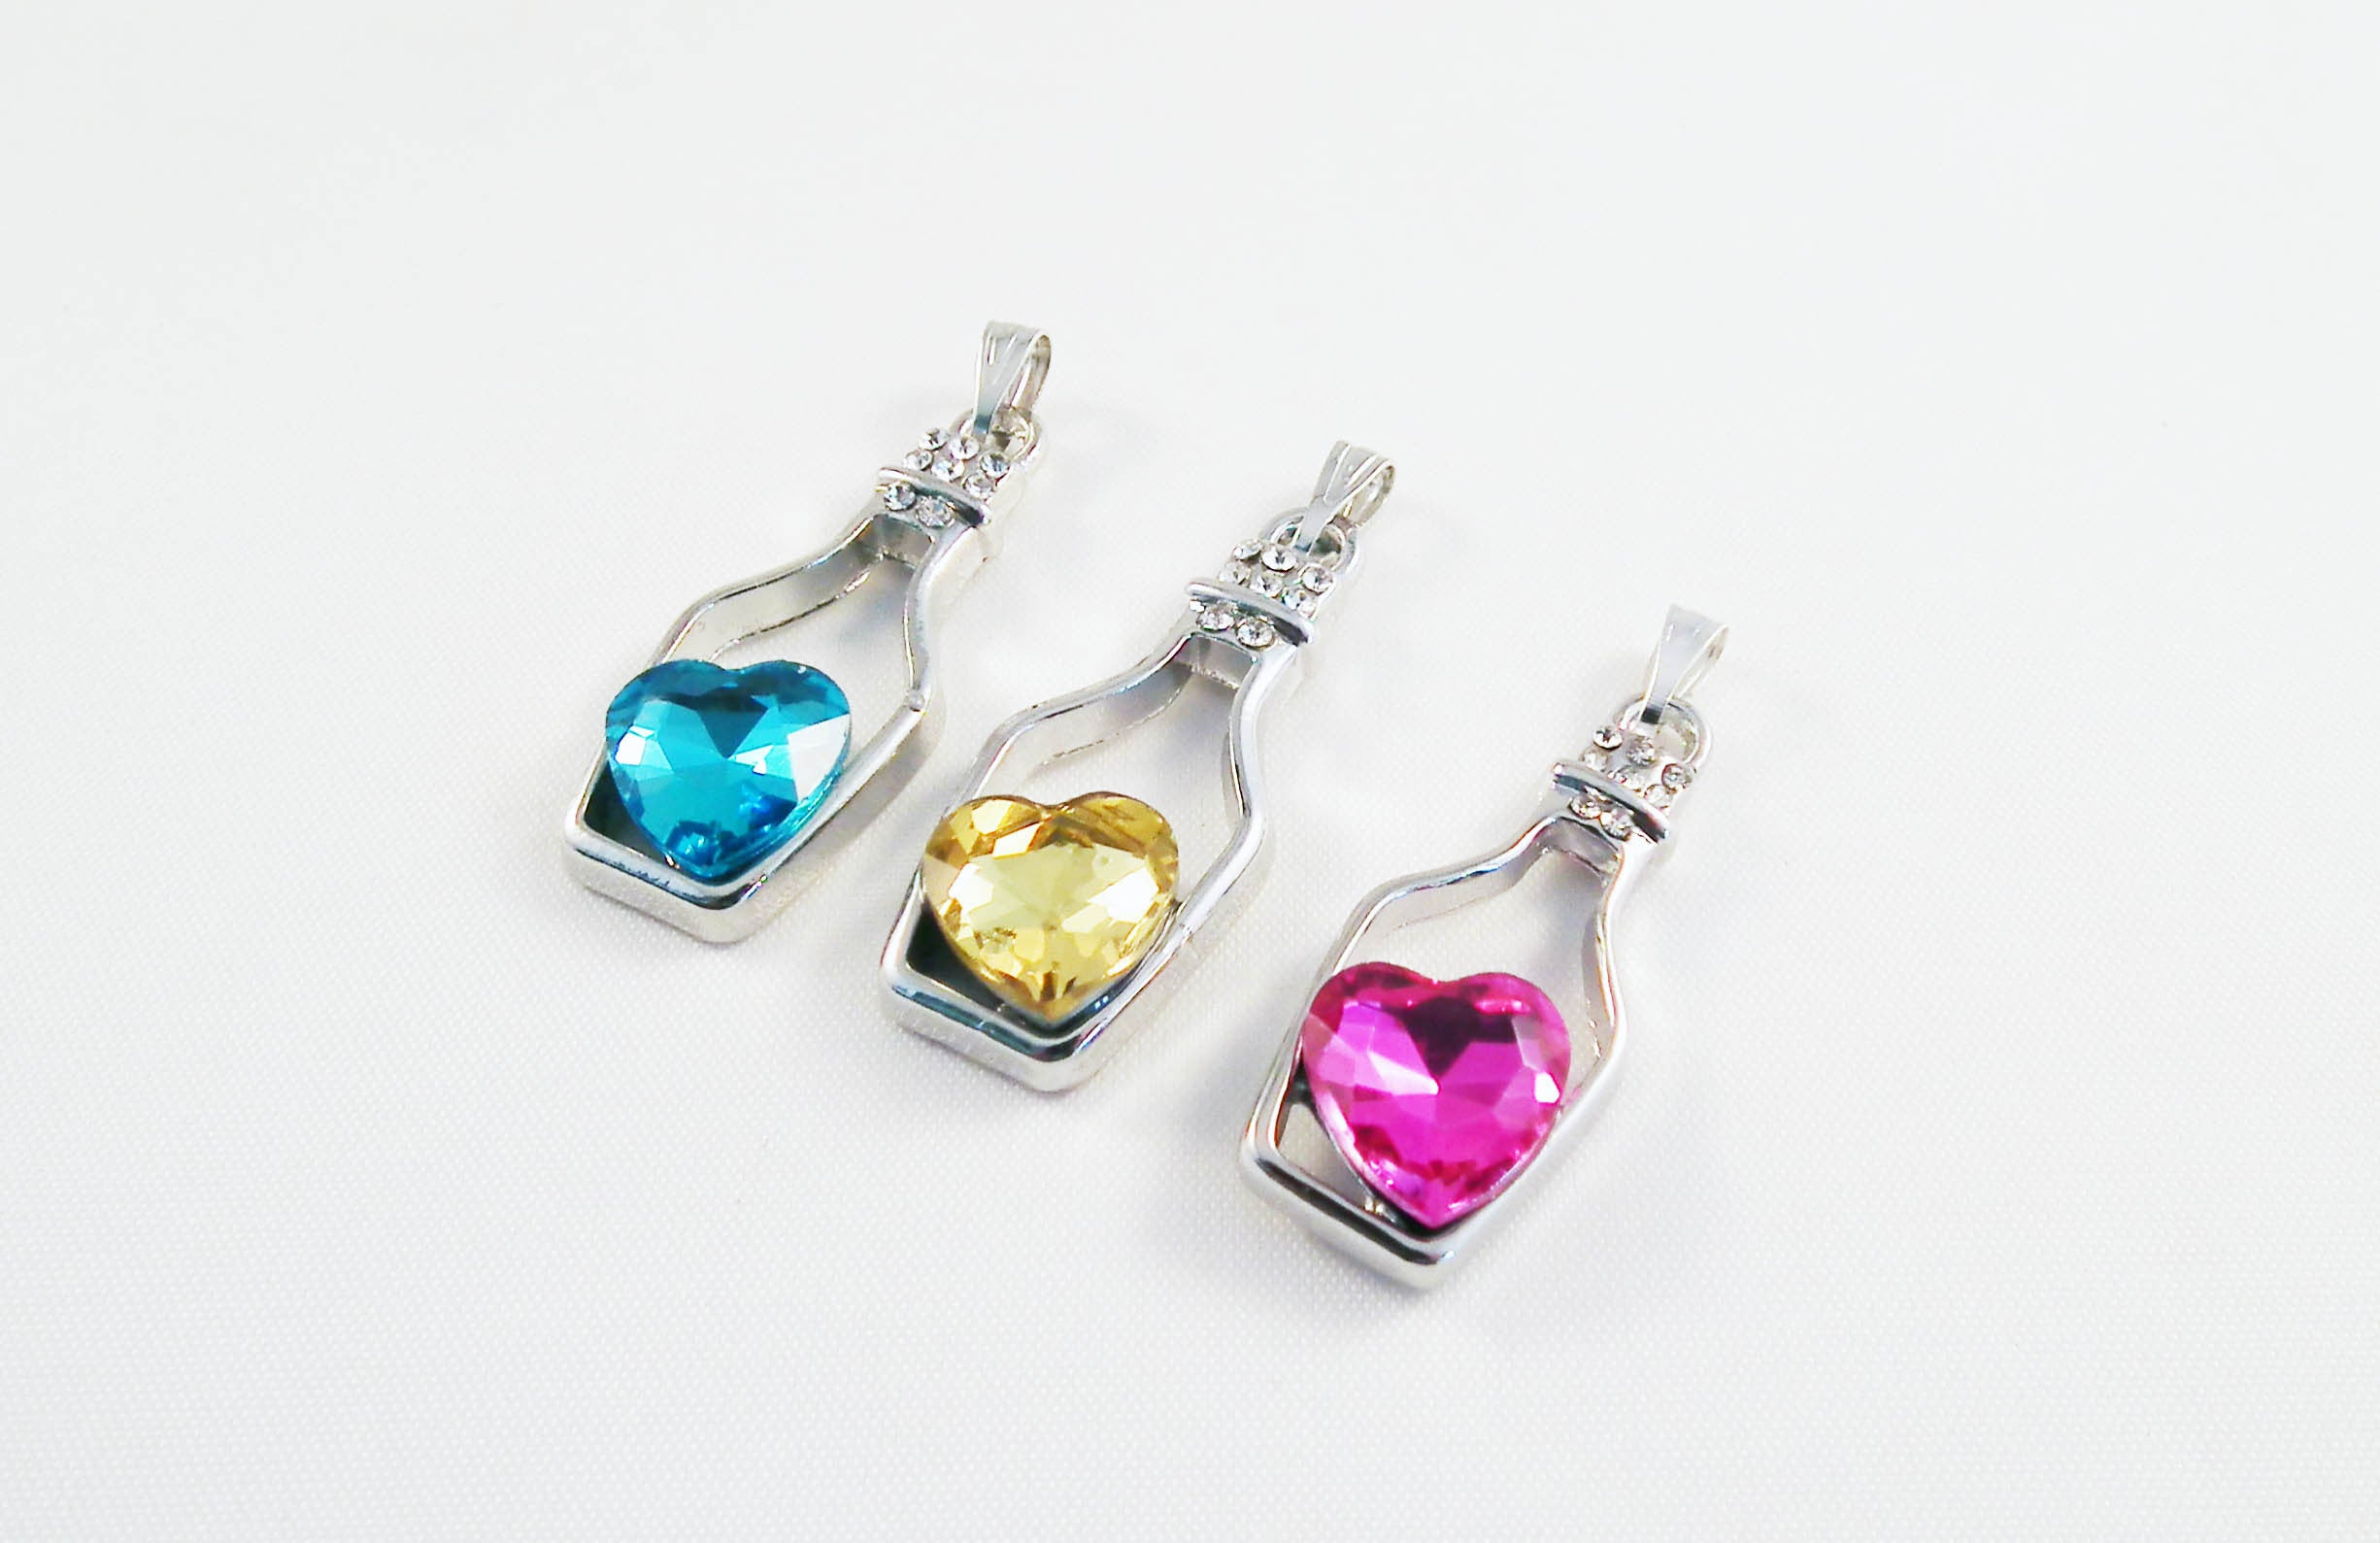 ALD4B - Breloque Bouteille Coeur Cristal / Crystal Heart Bottle Pendant - No Mercy Making